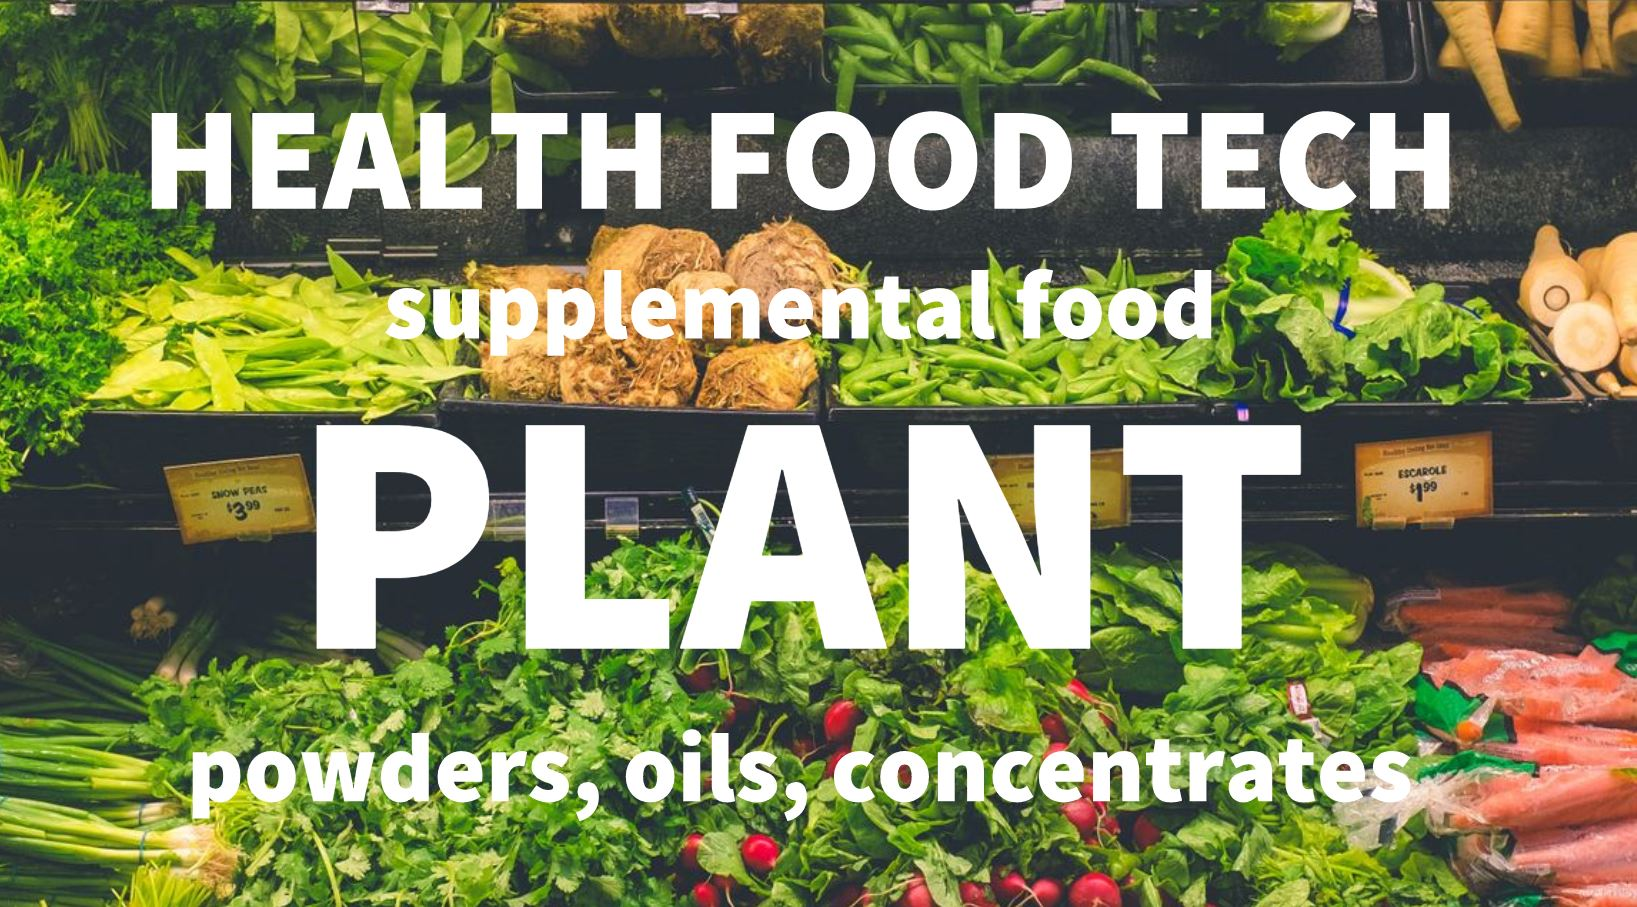 Our supplemental food has been around for 25 years and includes: Plant  powders, concentrates, and oils . For consumers, supplemental food must have an FDA food label (Nutrition Facts) vs. a FDA supplement label (Supplement Facts).